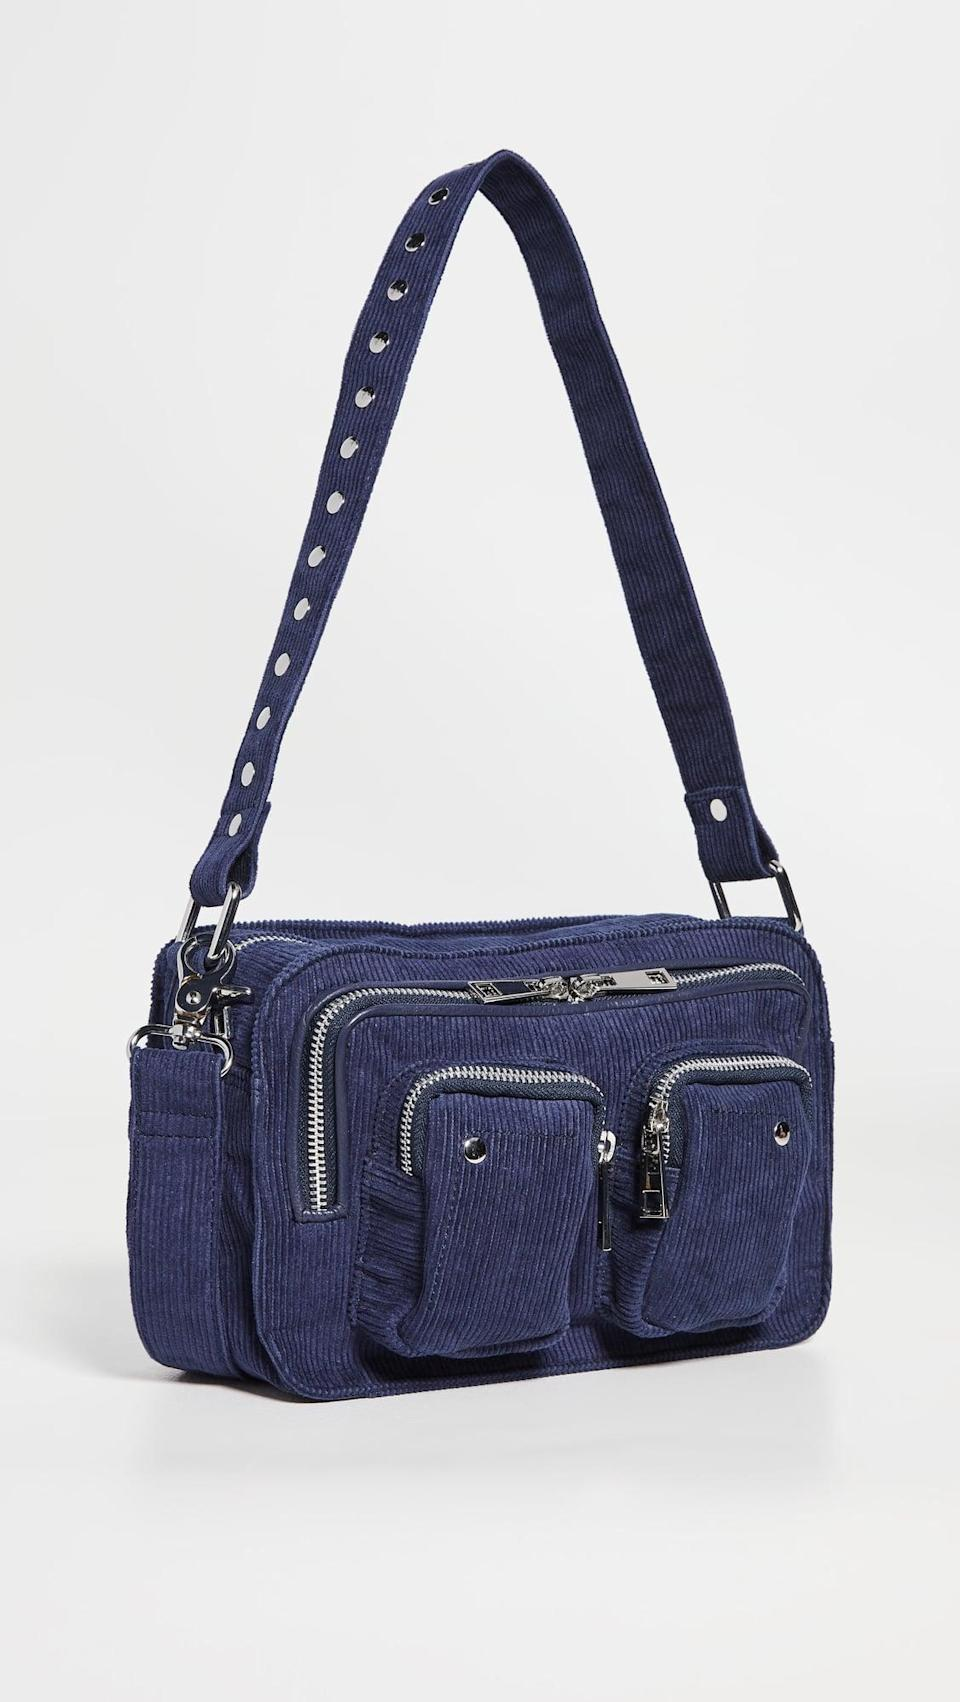 <p>This <span>Nunoo Ellie Corduroy Bag</span> ($56, originally $111) is such a cool fall bag. We're obsessed with the navy courduroy.</p>